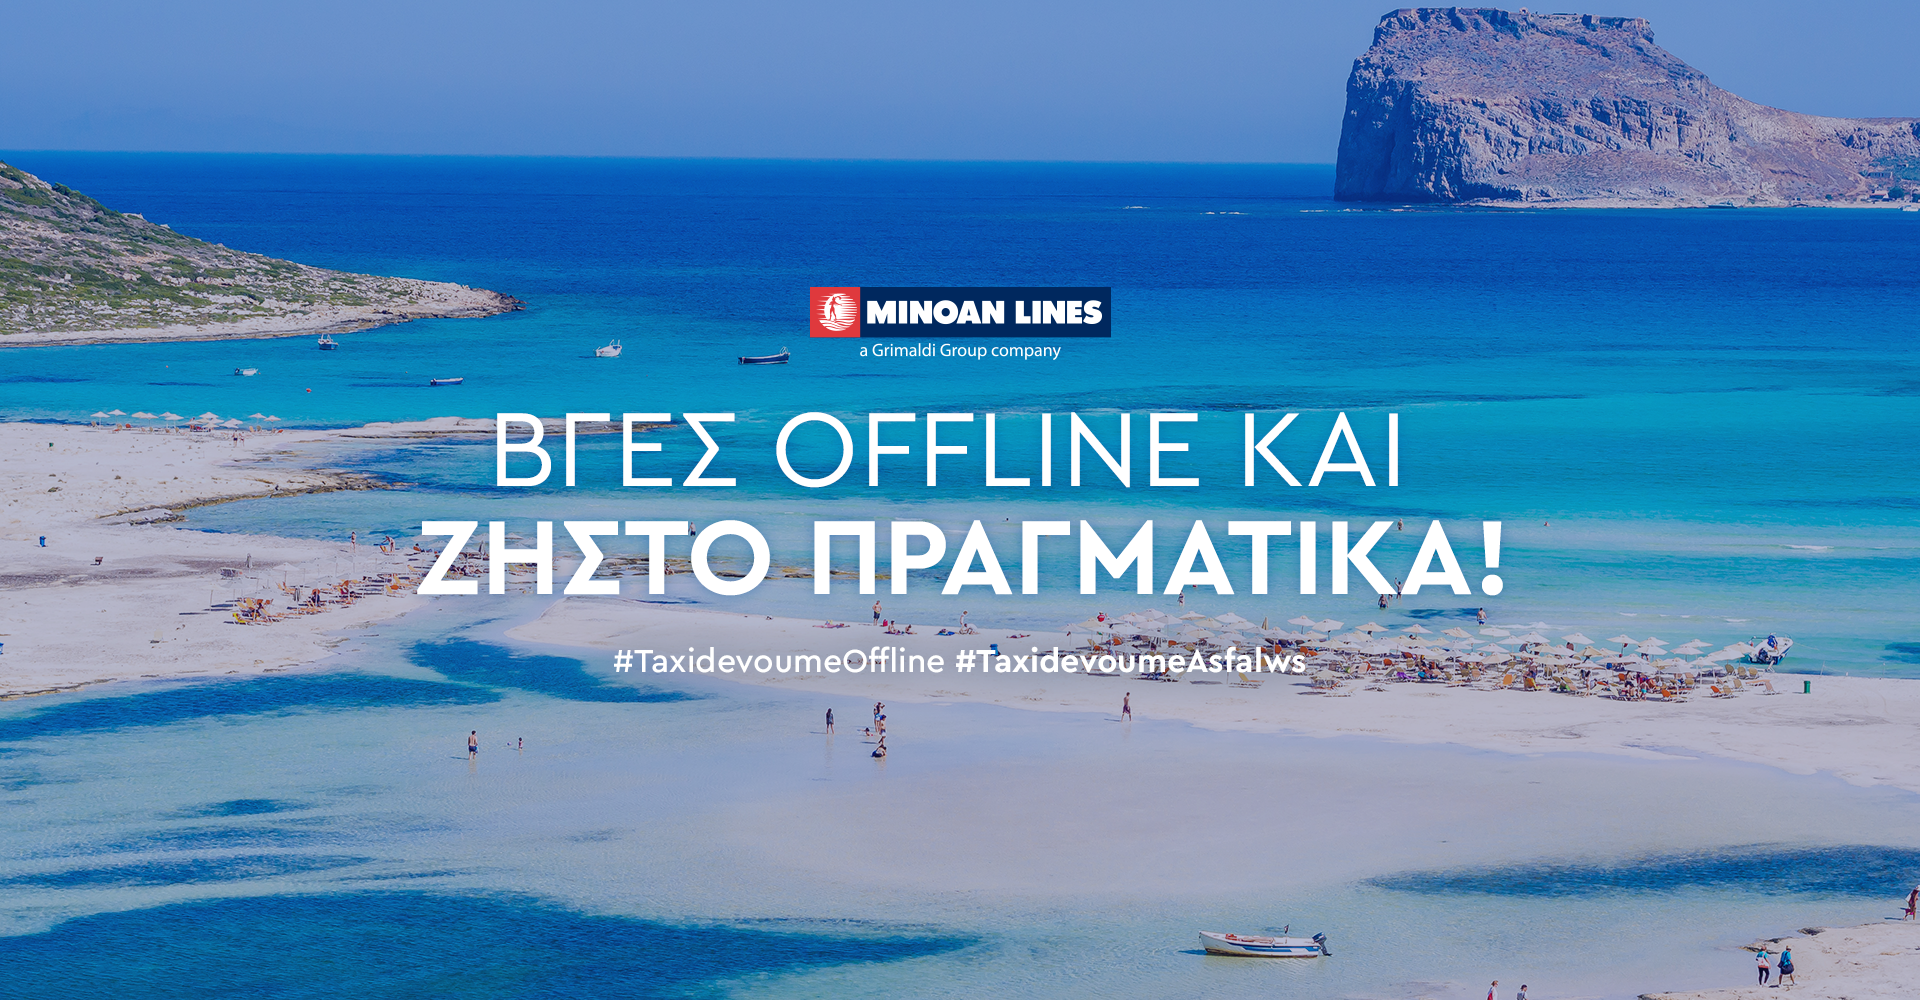 Minoan Lines' New Digital Campaign For The Day After. Dive in!